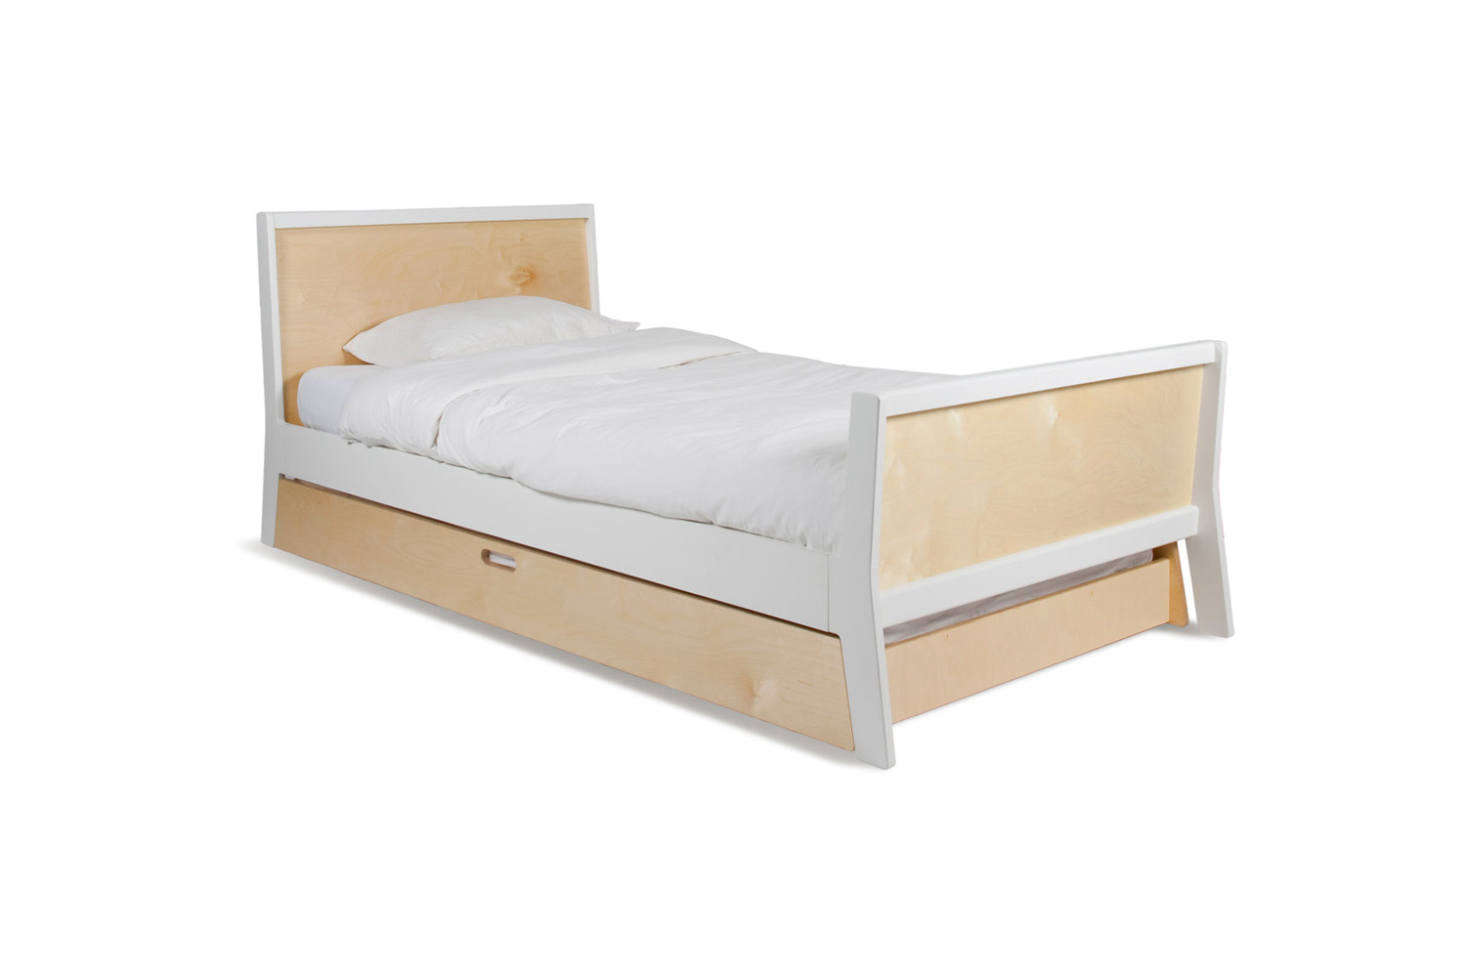 Discount Trundle Beds 10 Easy Pieces Best Trundle Beds For Sleepovers Remodelista